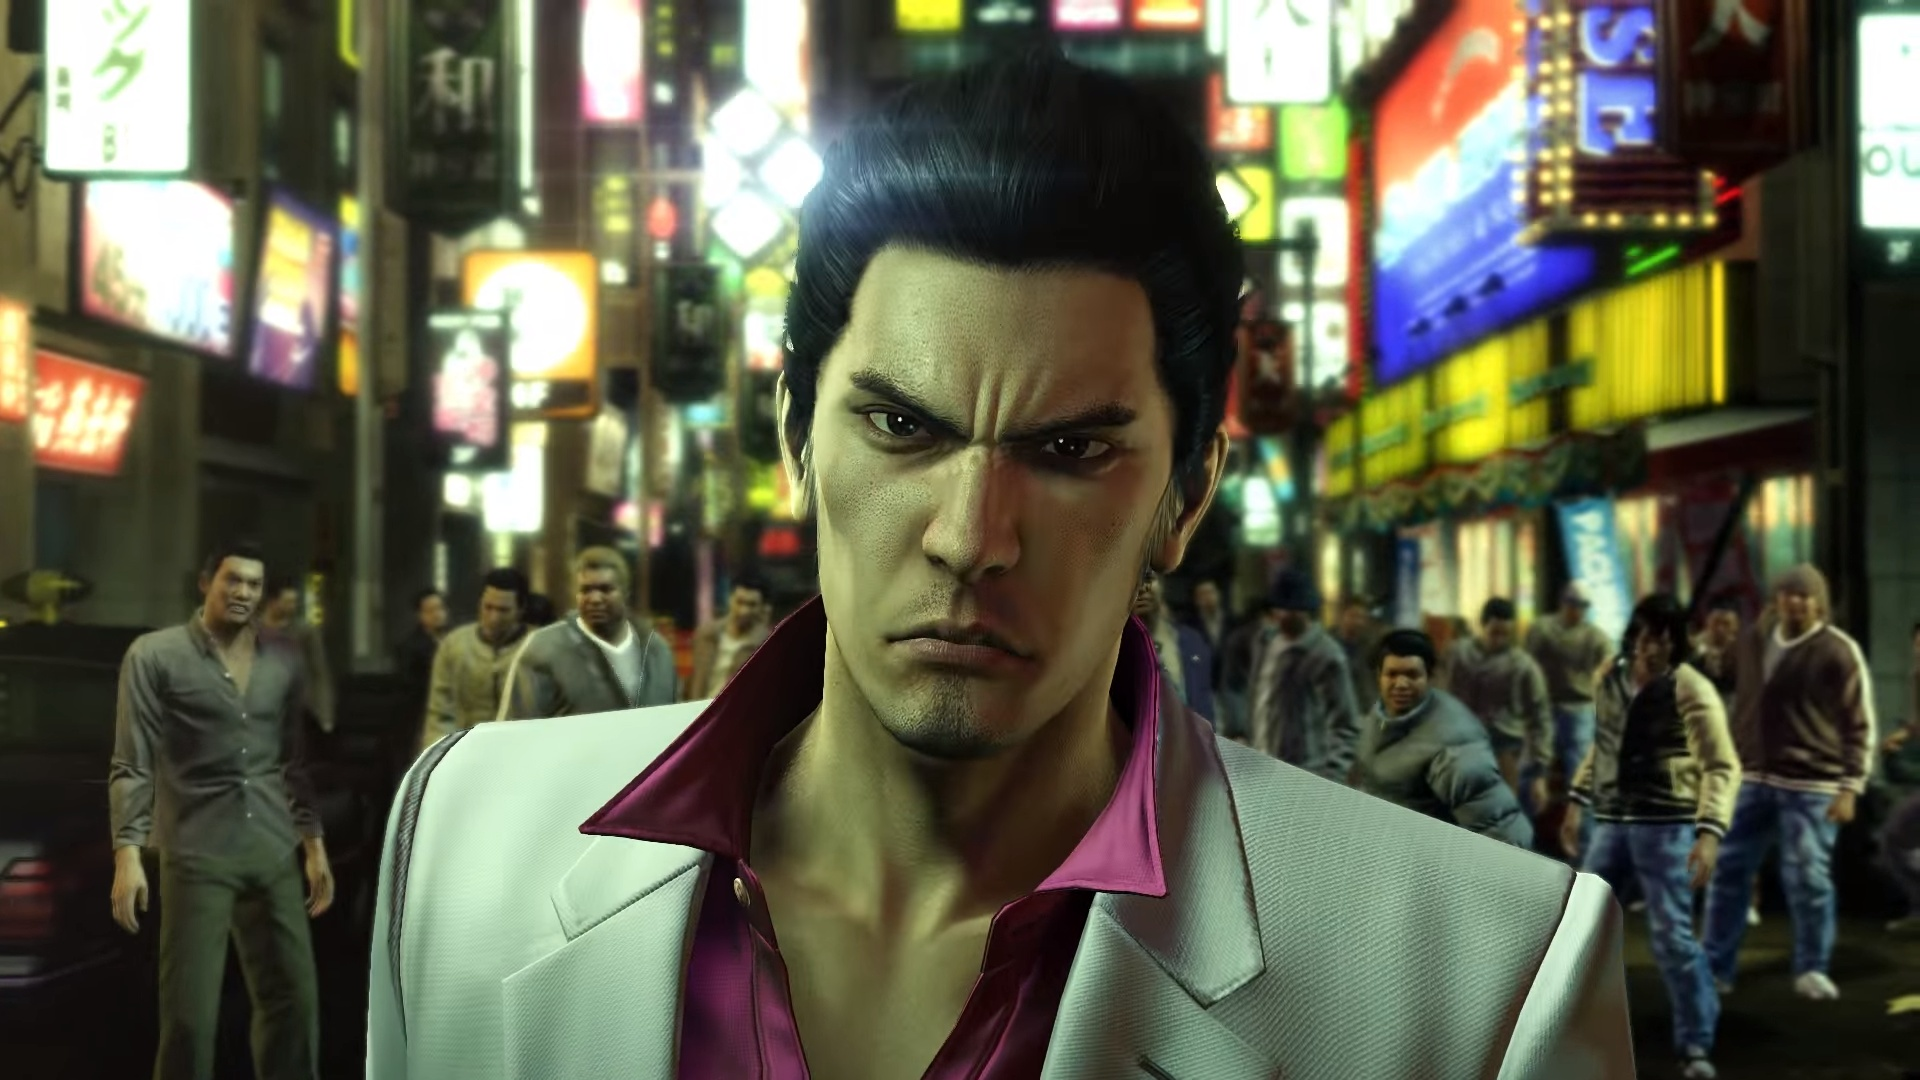 YAKUZA 3 4 Y 5 LO WORDO REMASTER PA PS4